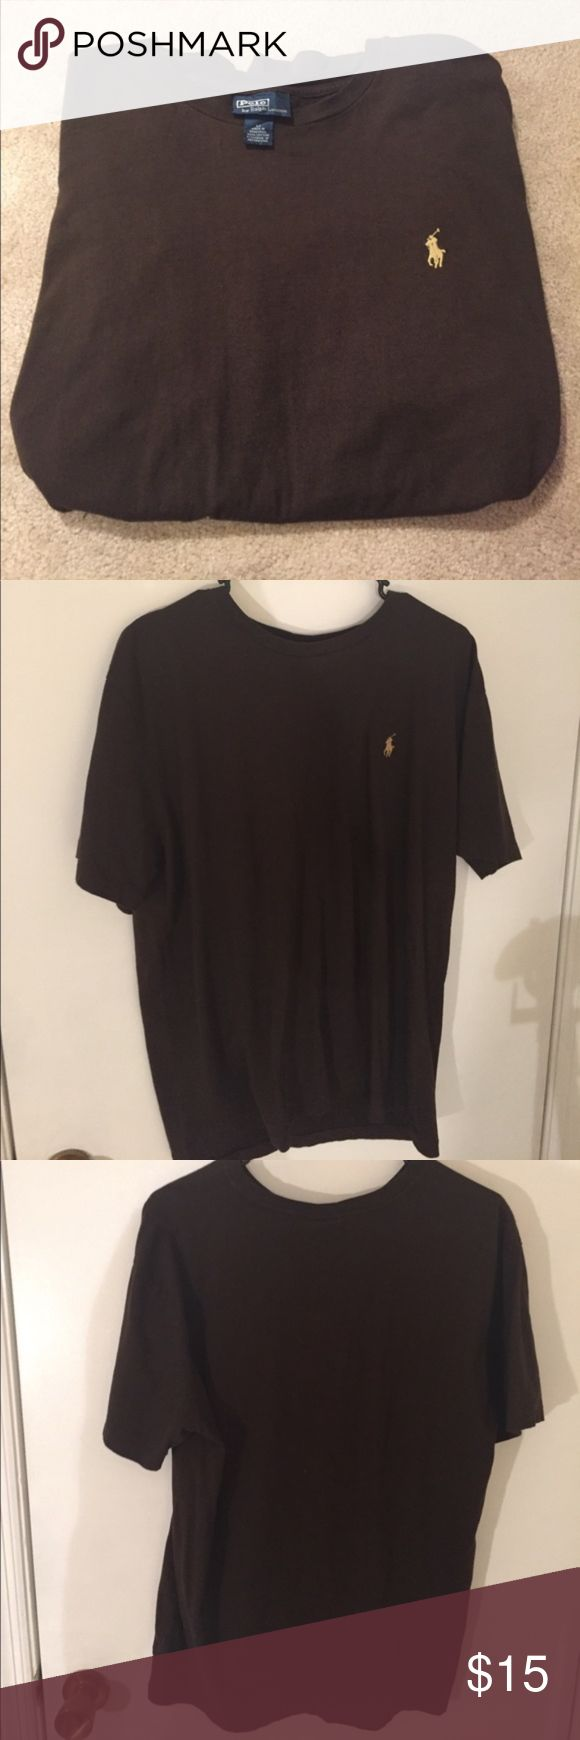 Polo Ralph Lauren Classic T-Shirt Excellent condition mens Ralph Lauren Polo T-shirt. No rips, stains, or tears. Polo by Ralph Lauren Shirts Tees - Short Sleeve